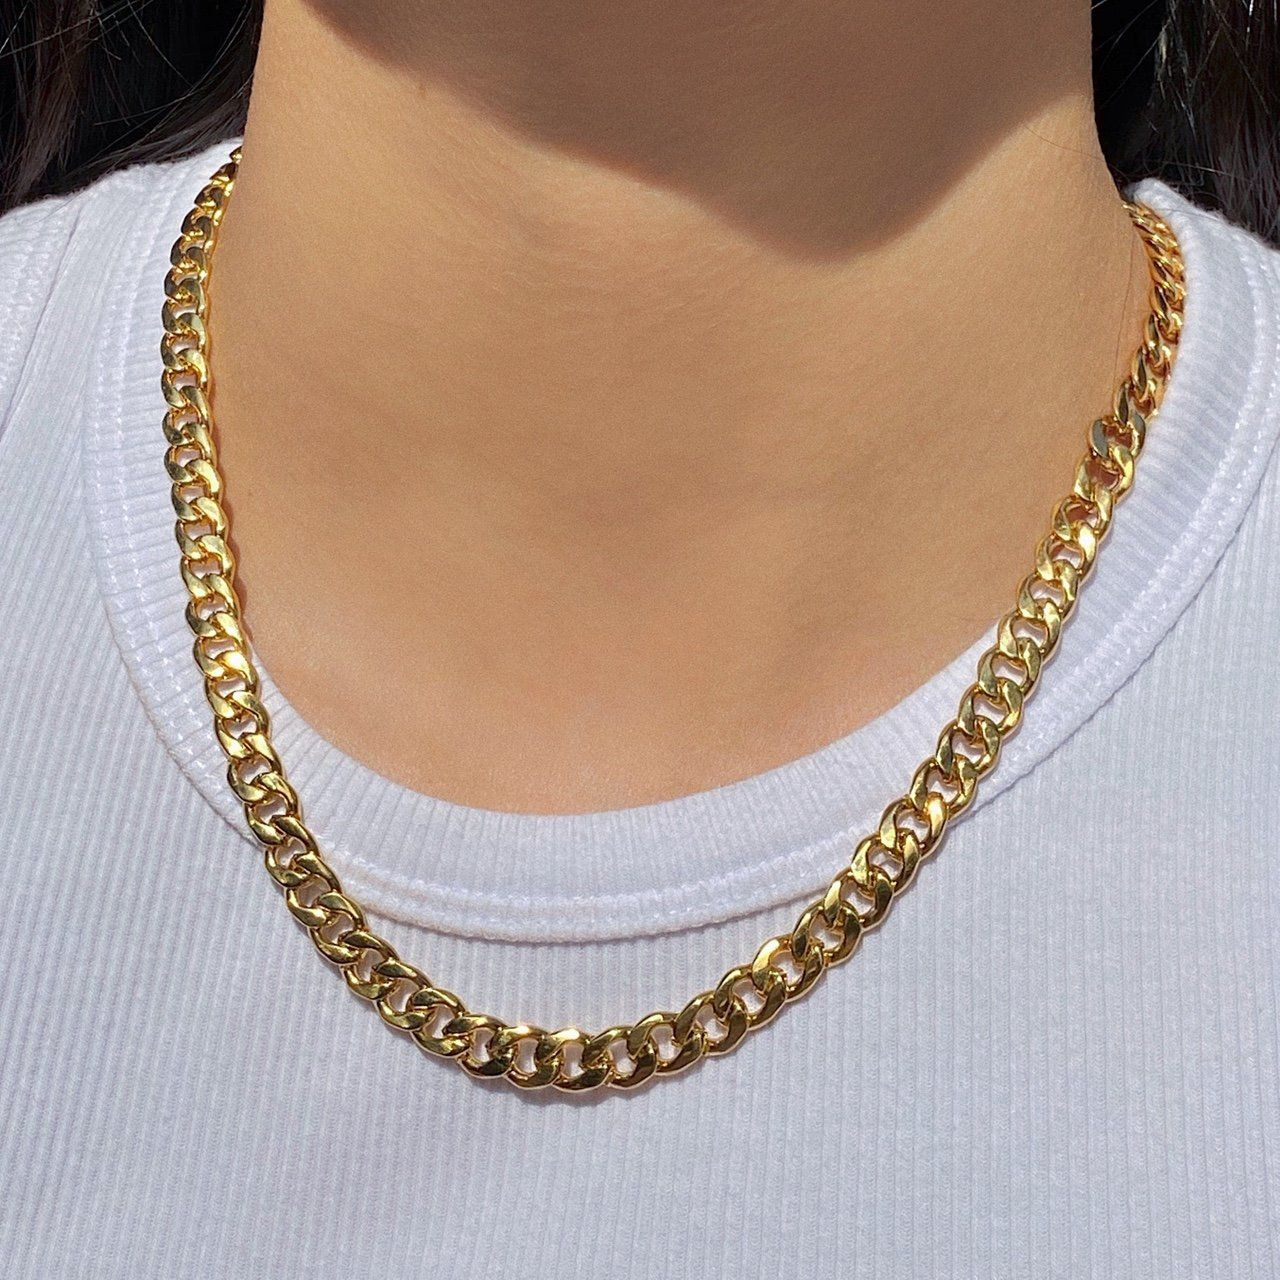 18K GOLD PLATED STAINLESS STEEL NECKLACE LOBSTER CLASP CLOSURE MULTIPLE LENGTHS AVAILABLE - SELECT SIZE AT CHECKOUT